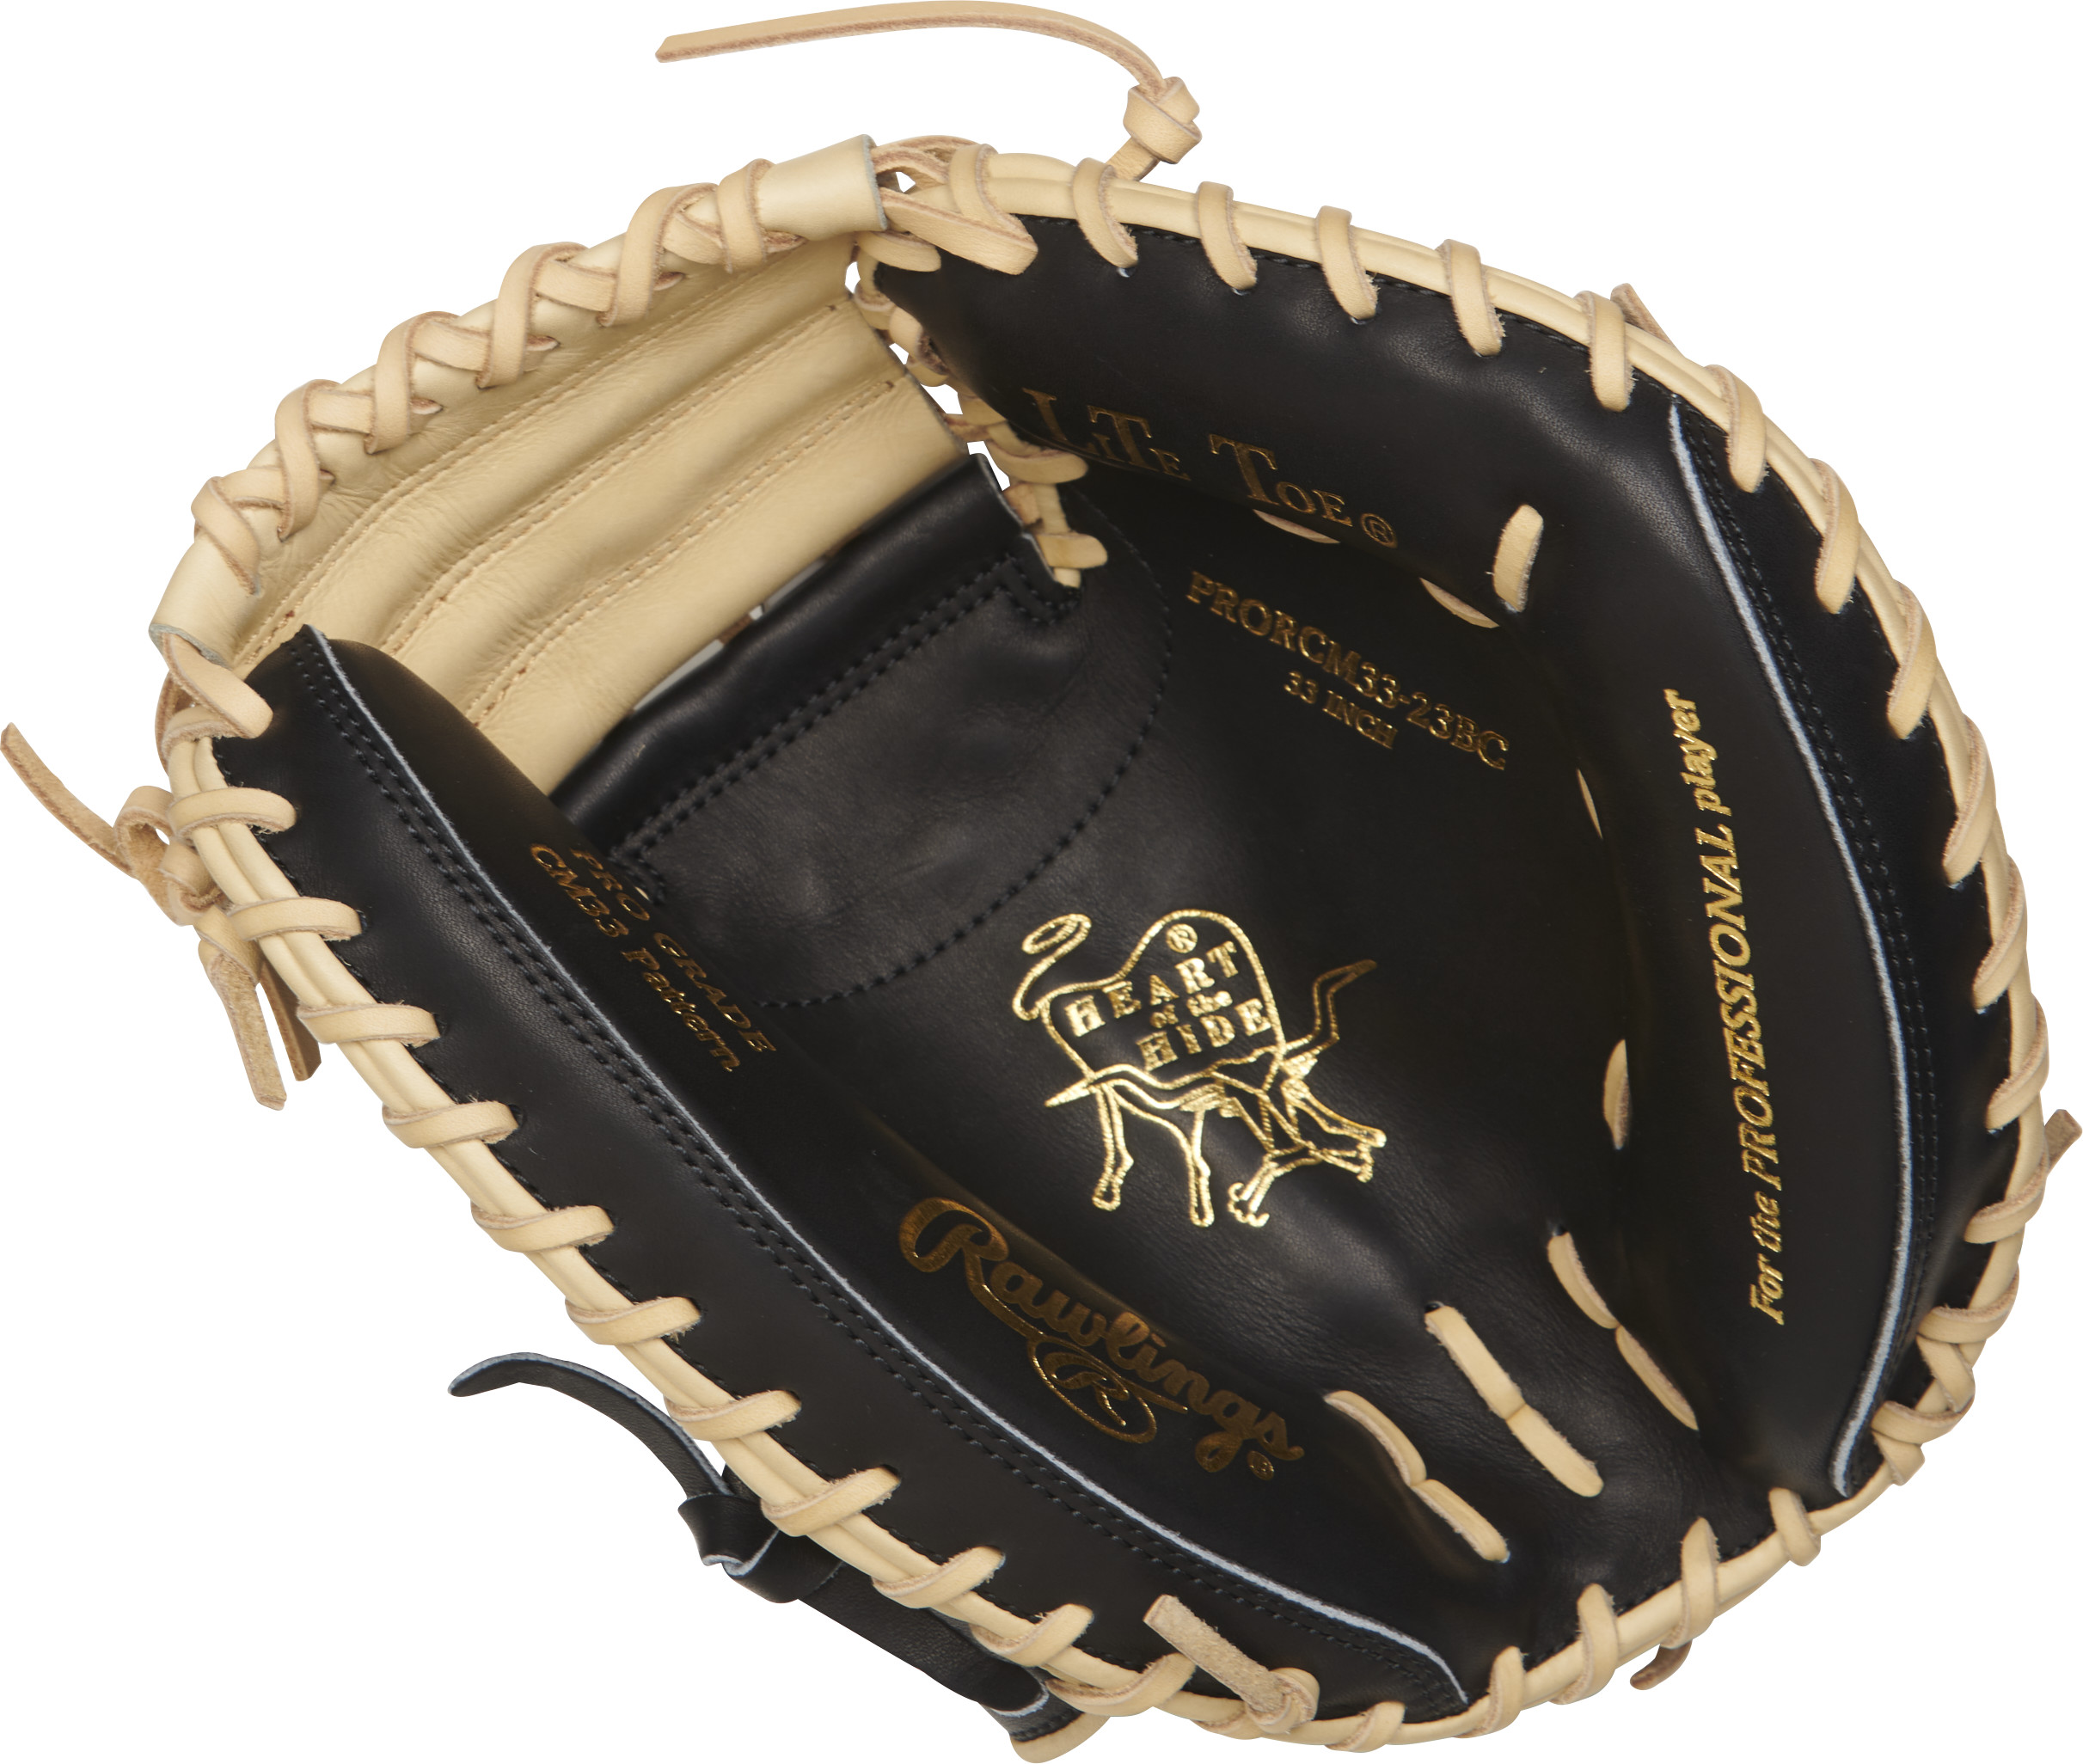 http://www.bestbatdeals.com/images/gloves/rawlings/PRORCM33-23BC-1.jpg